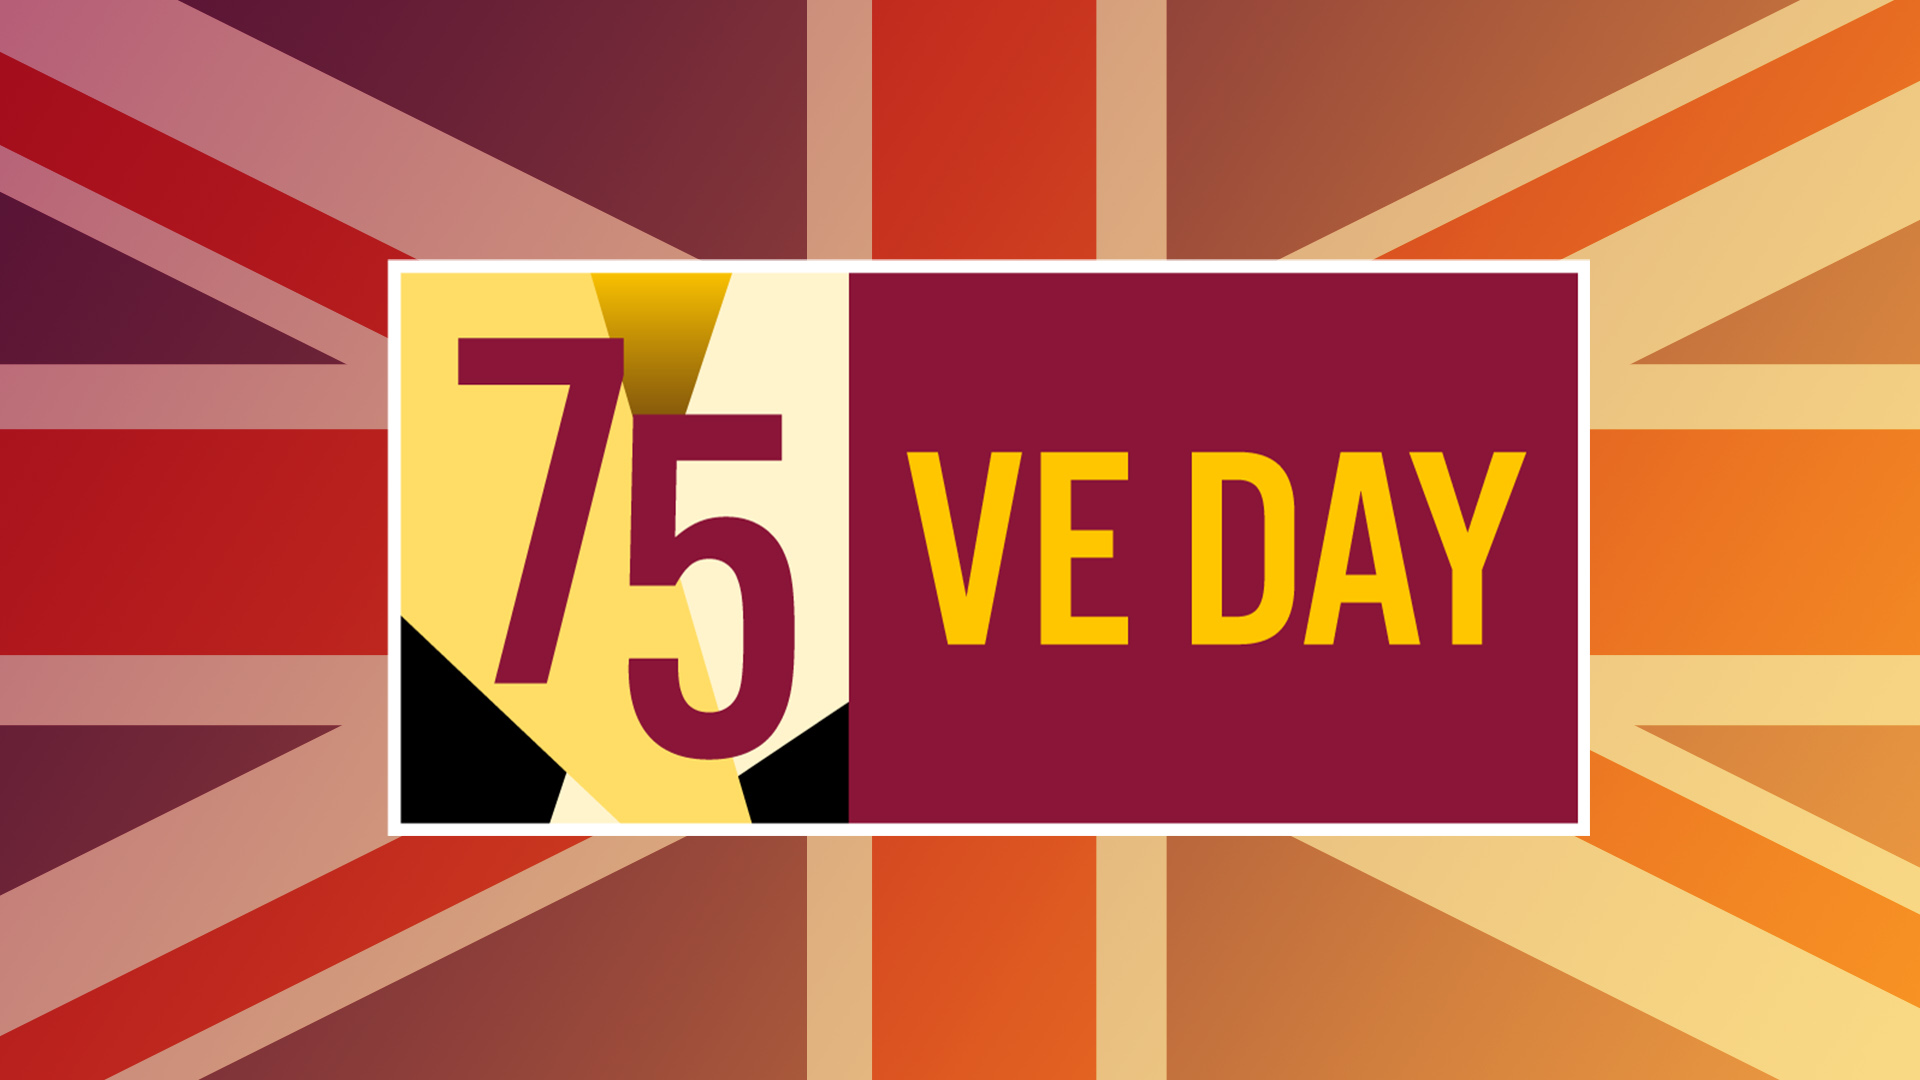 Union Jack with label saying 75 VE Day